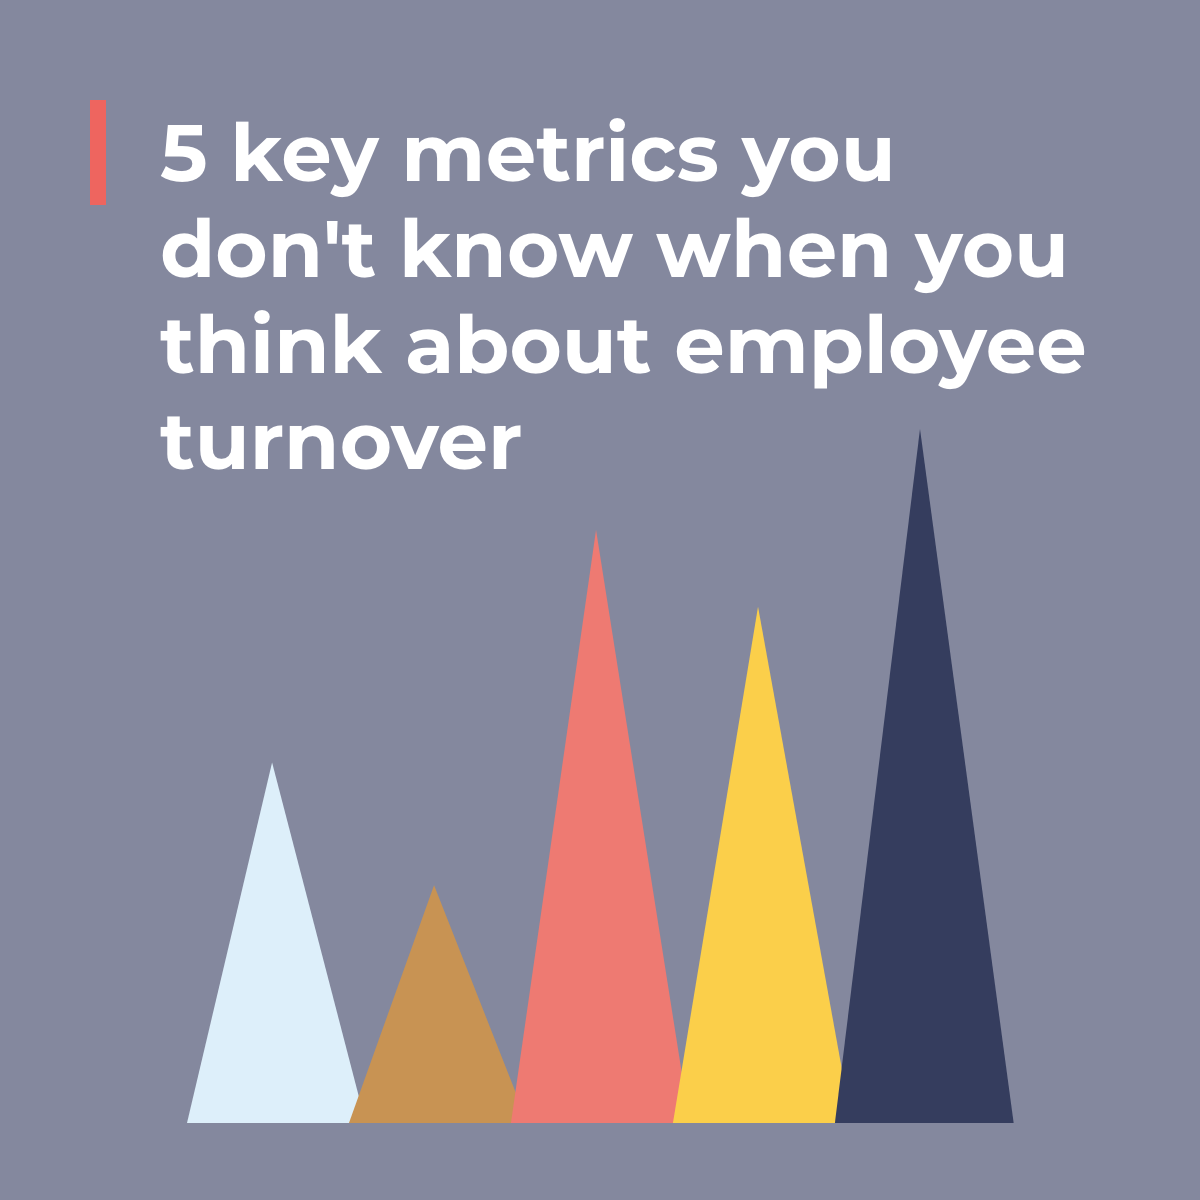 5 key metrics you don't know when you think about employee turnover